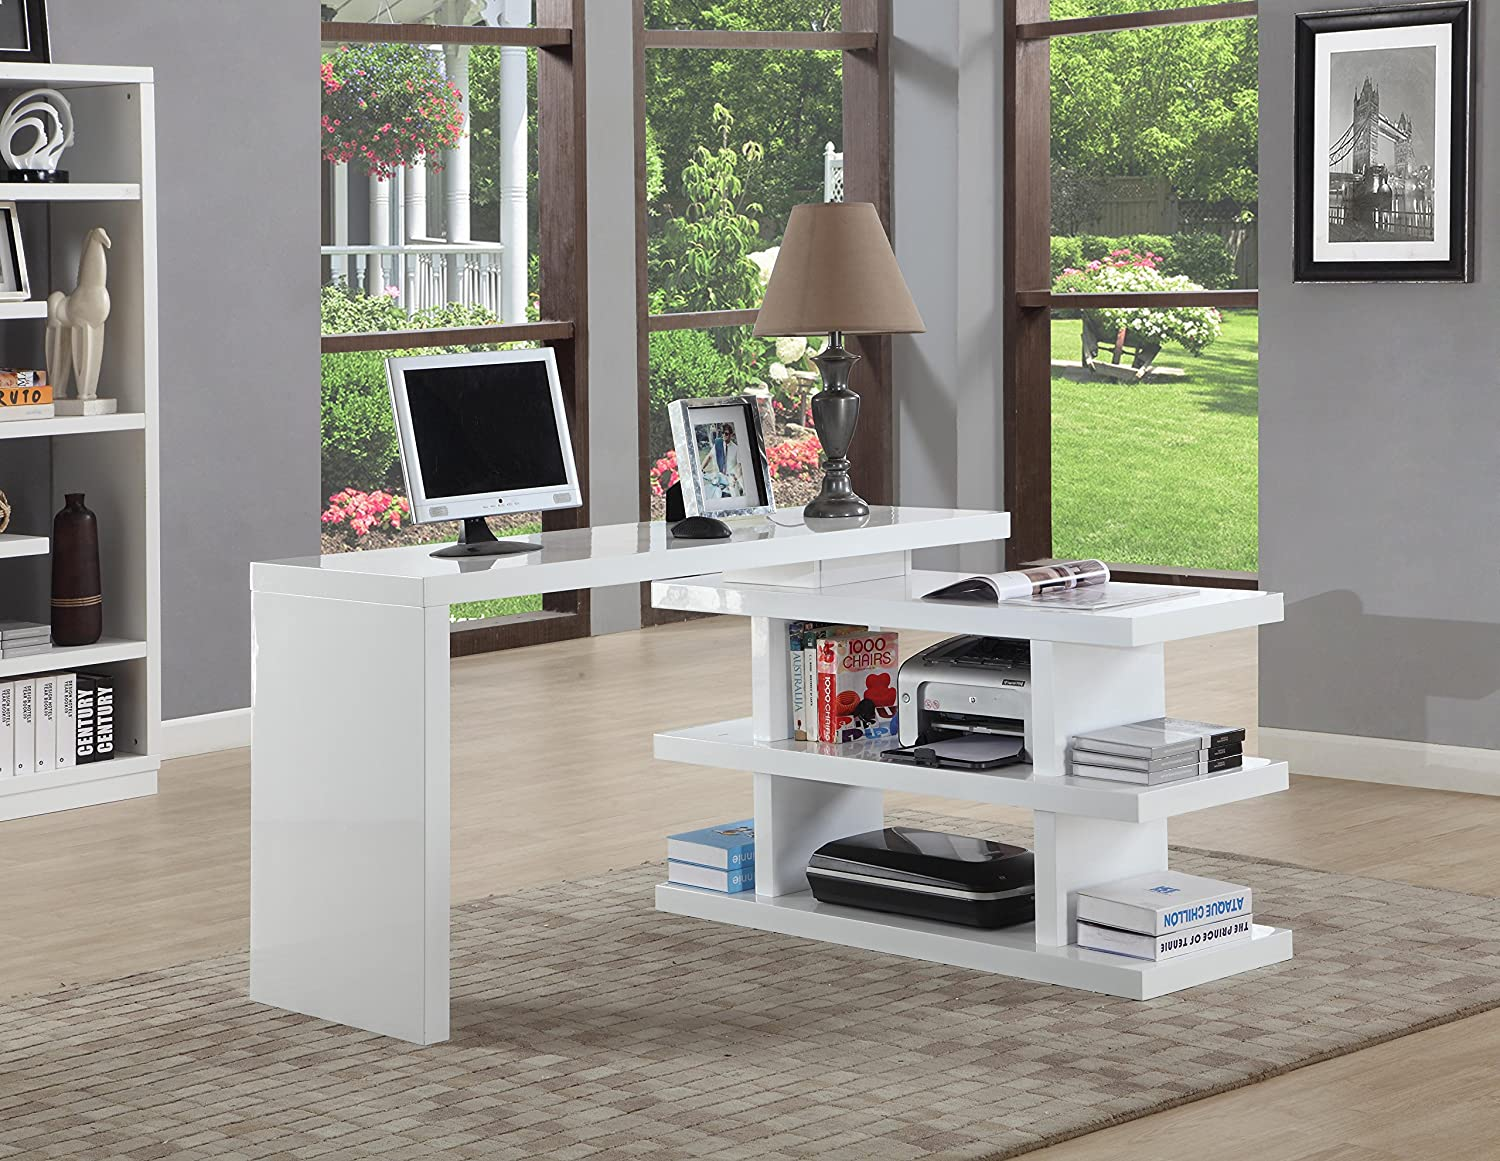 amazoncom chintaly imports  motion home office desk white  - amazoncom chintaly imports  motion home office desk white kitchen dining